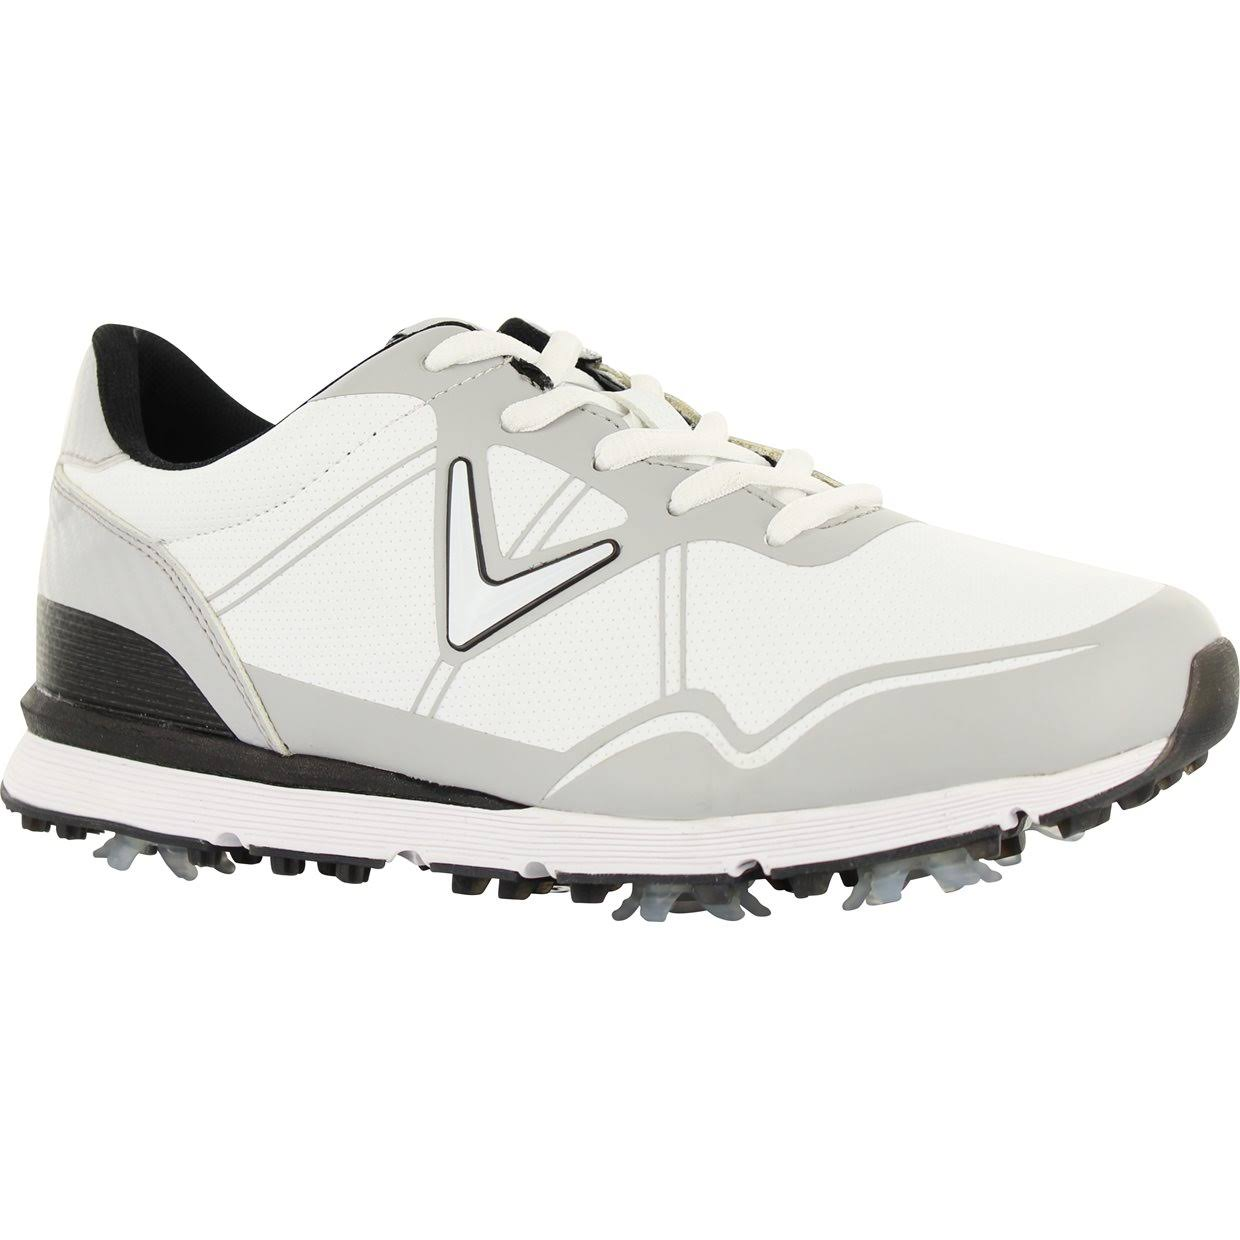 Callaway Halo 2017 Womens Golf Shoes (White)